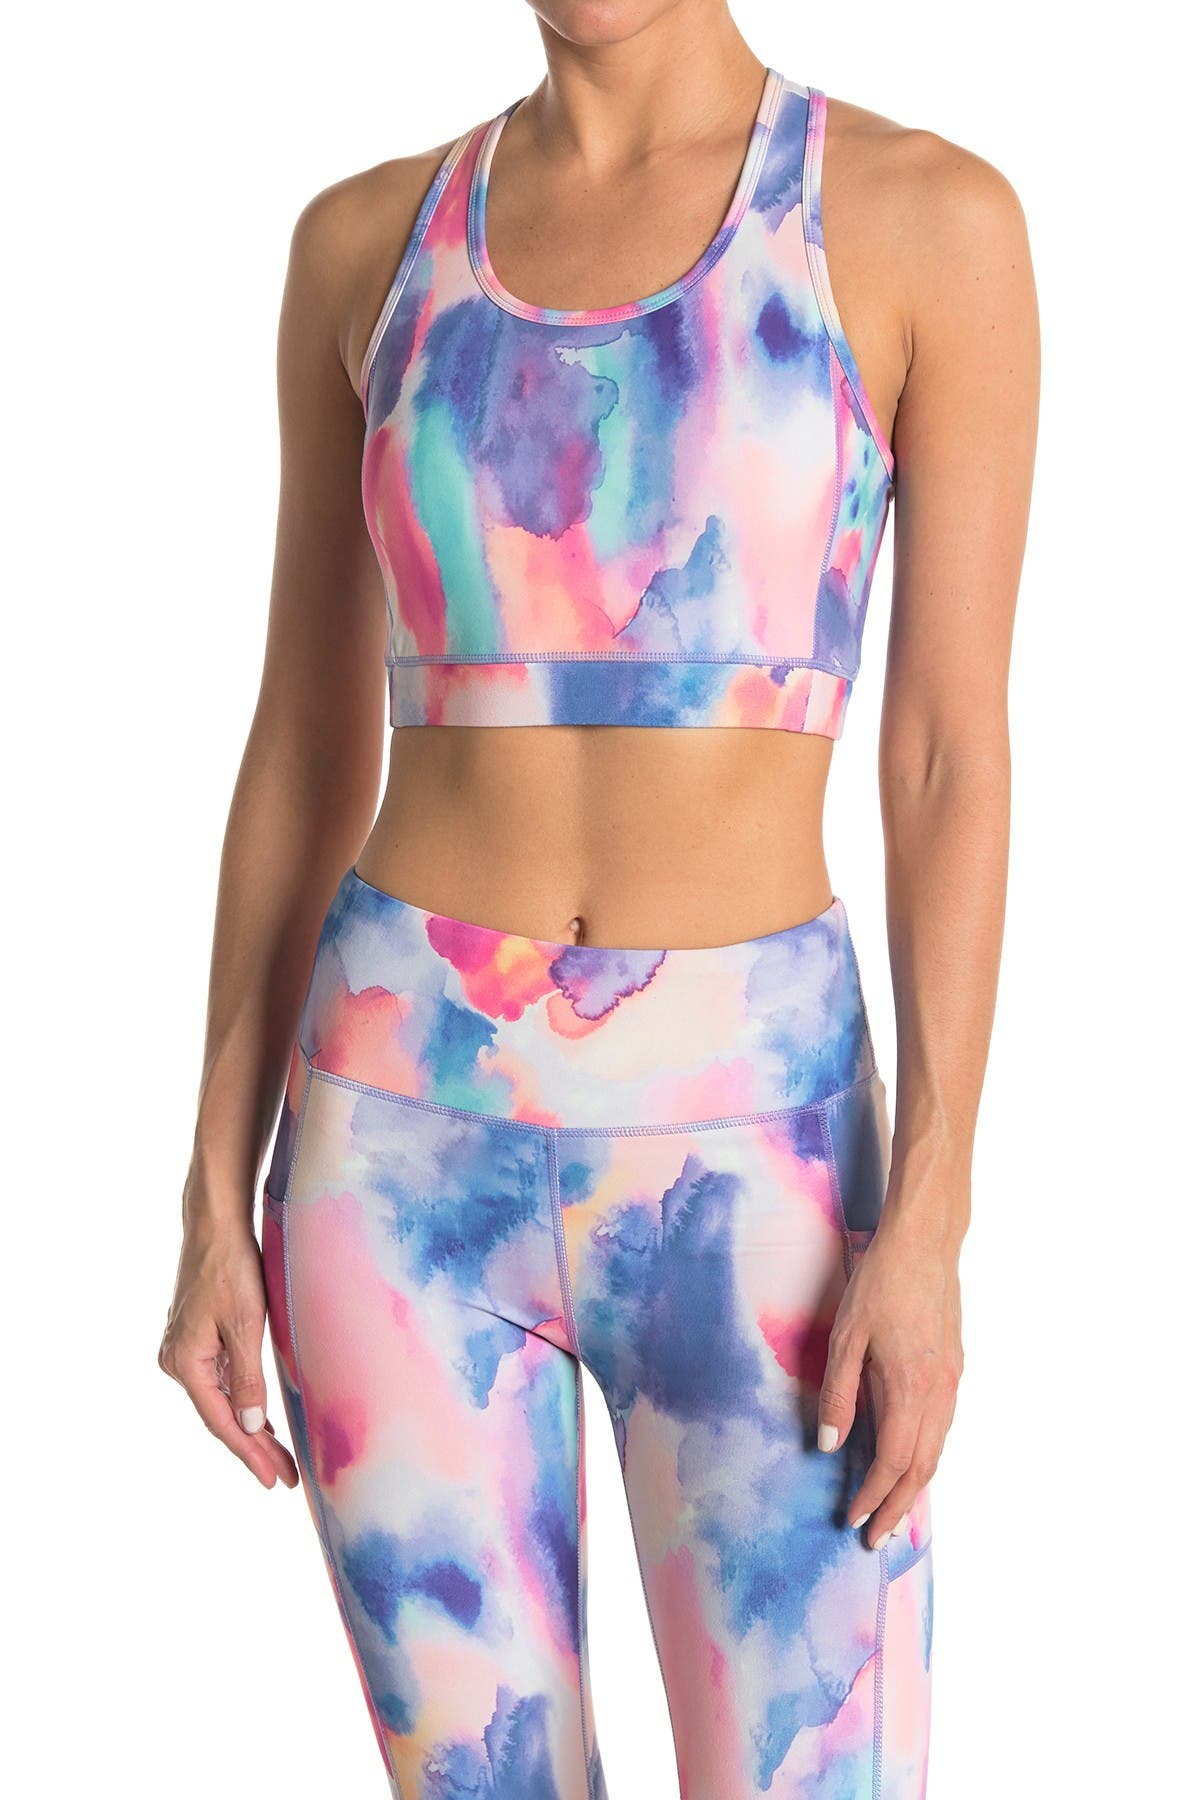 Image of Threads 4 Thought Suki Watercolor Dreams Sports Bra